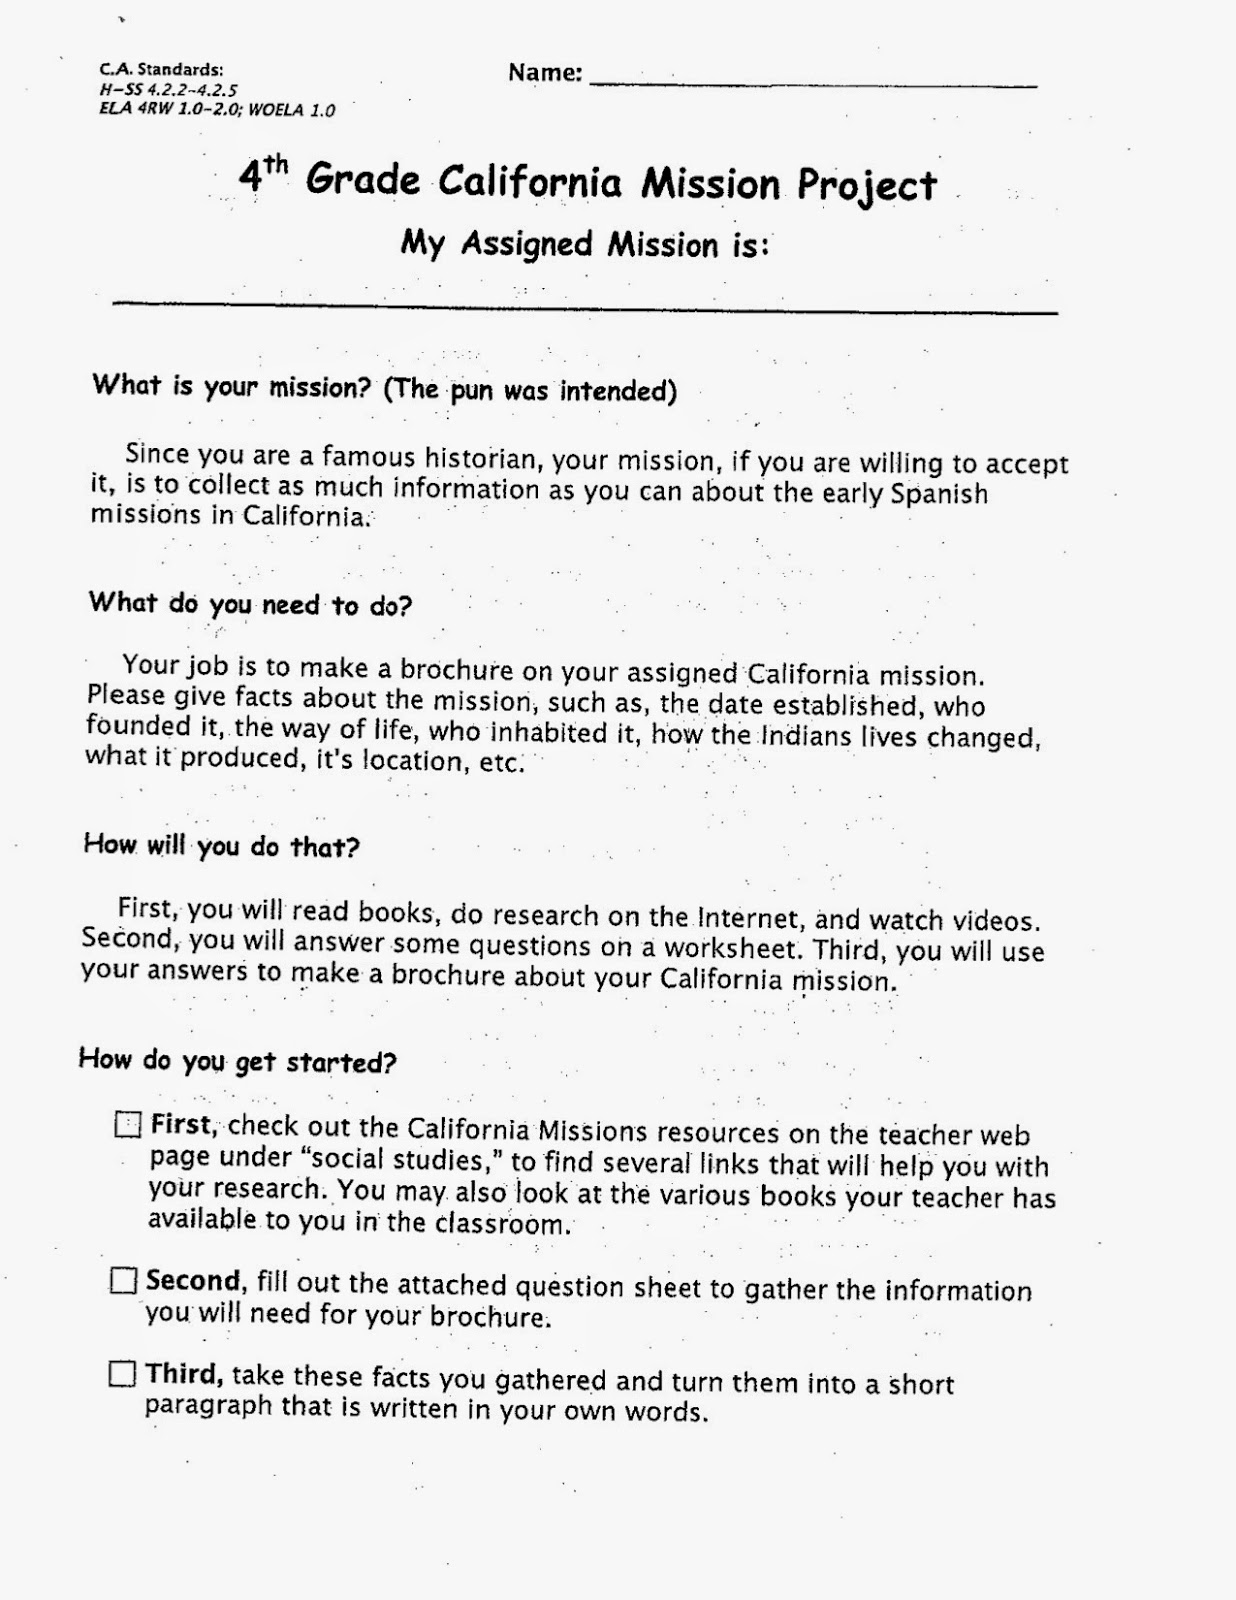 small resolution of California Missions Worksheets For Kids   Printable Worksheets and  Activities for Teachers